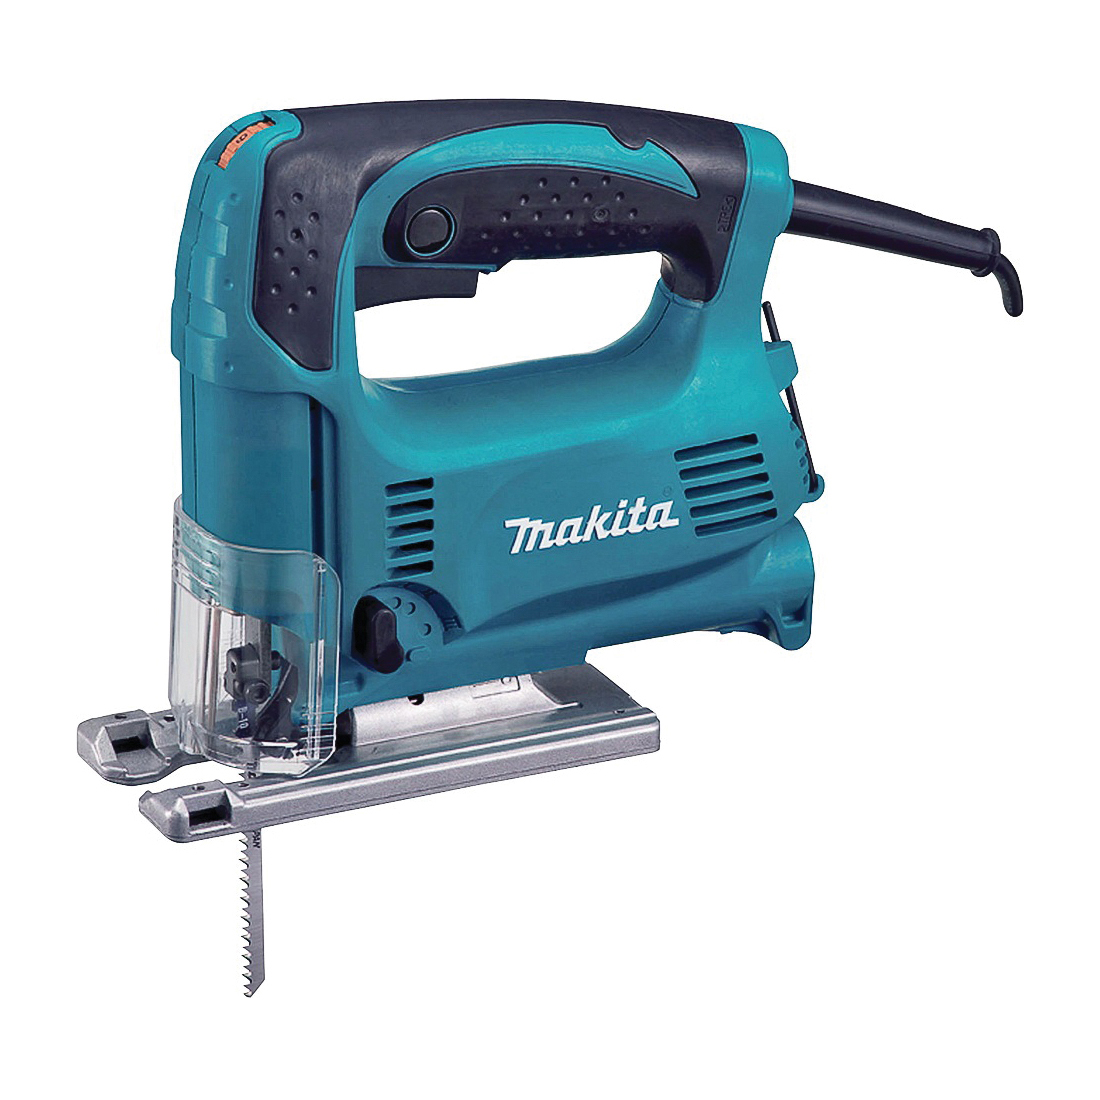 Picture of Makita 4329K Jig Saw, 120 V, 3.9 A, 2-9/16 in Wood, 1/4 in Steel Cutting Capacity, 11/16 in L Stroke